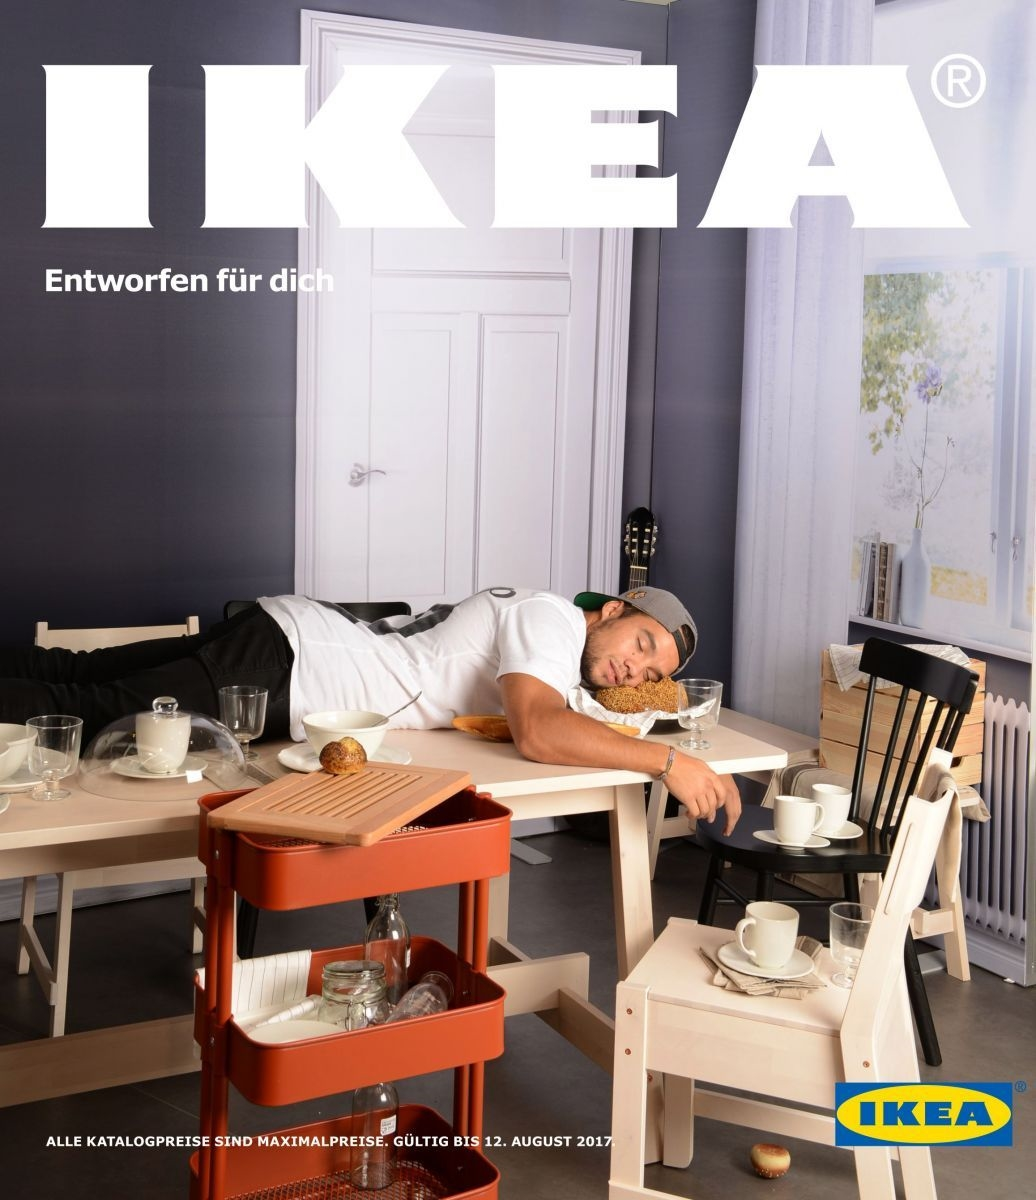 jeff jeder wird zum titelstar des ikea katalogs marketing. Black Bedroom Furniture Sets. Home Design Ideas